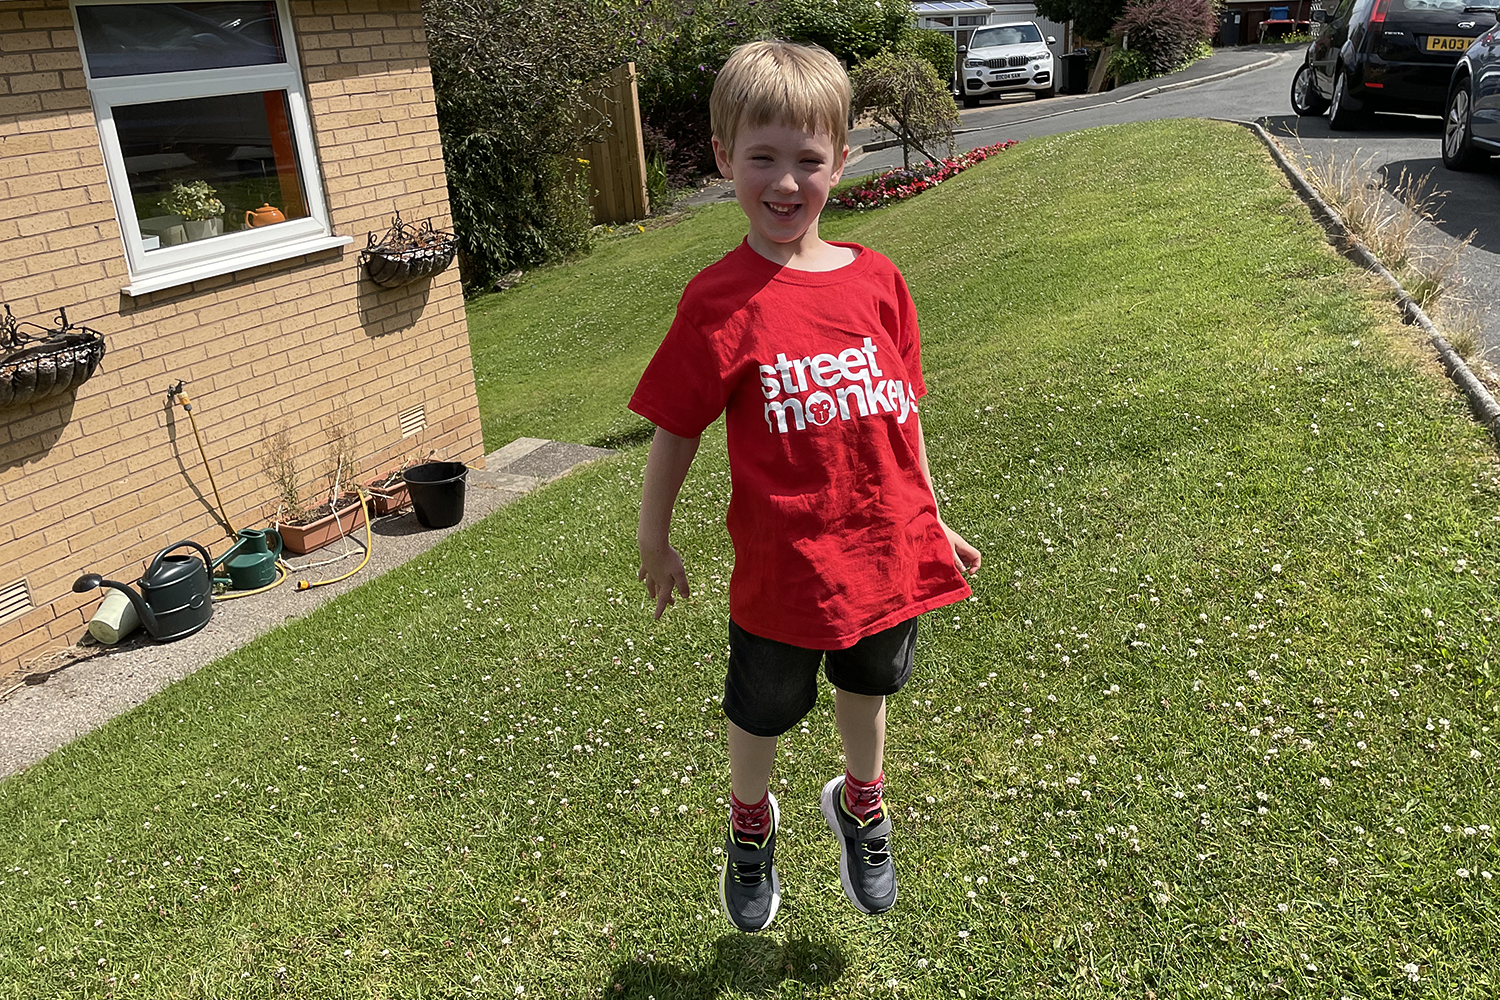 Gabe jumping on the grass outside our house wearing his red Street Monkeys t-shirt